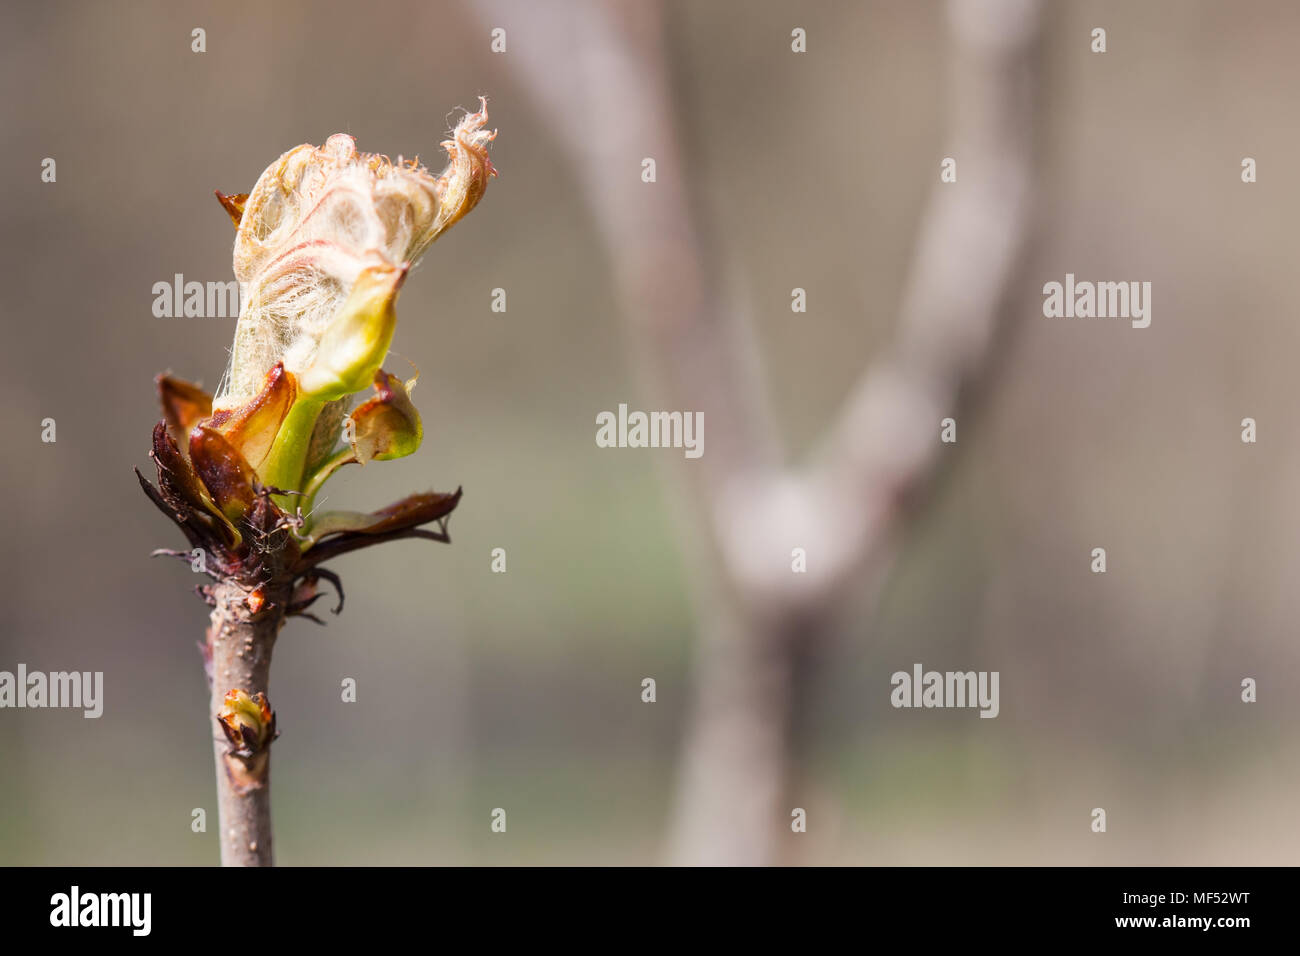 New life spring time concept. Horse chestnut bud bursting into leaves. Castania tree branch macro view. Shallow depth of field, soft focus background, copy space Stock Photo